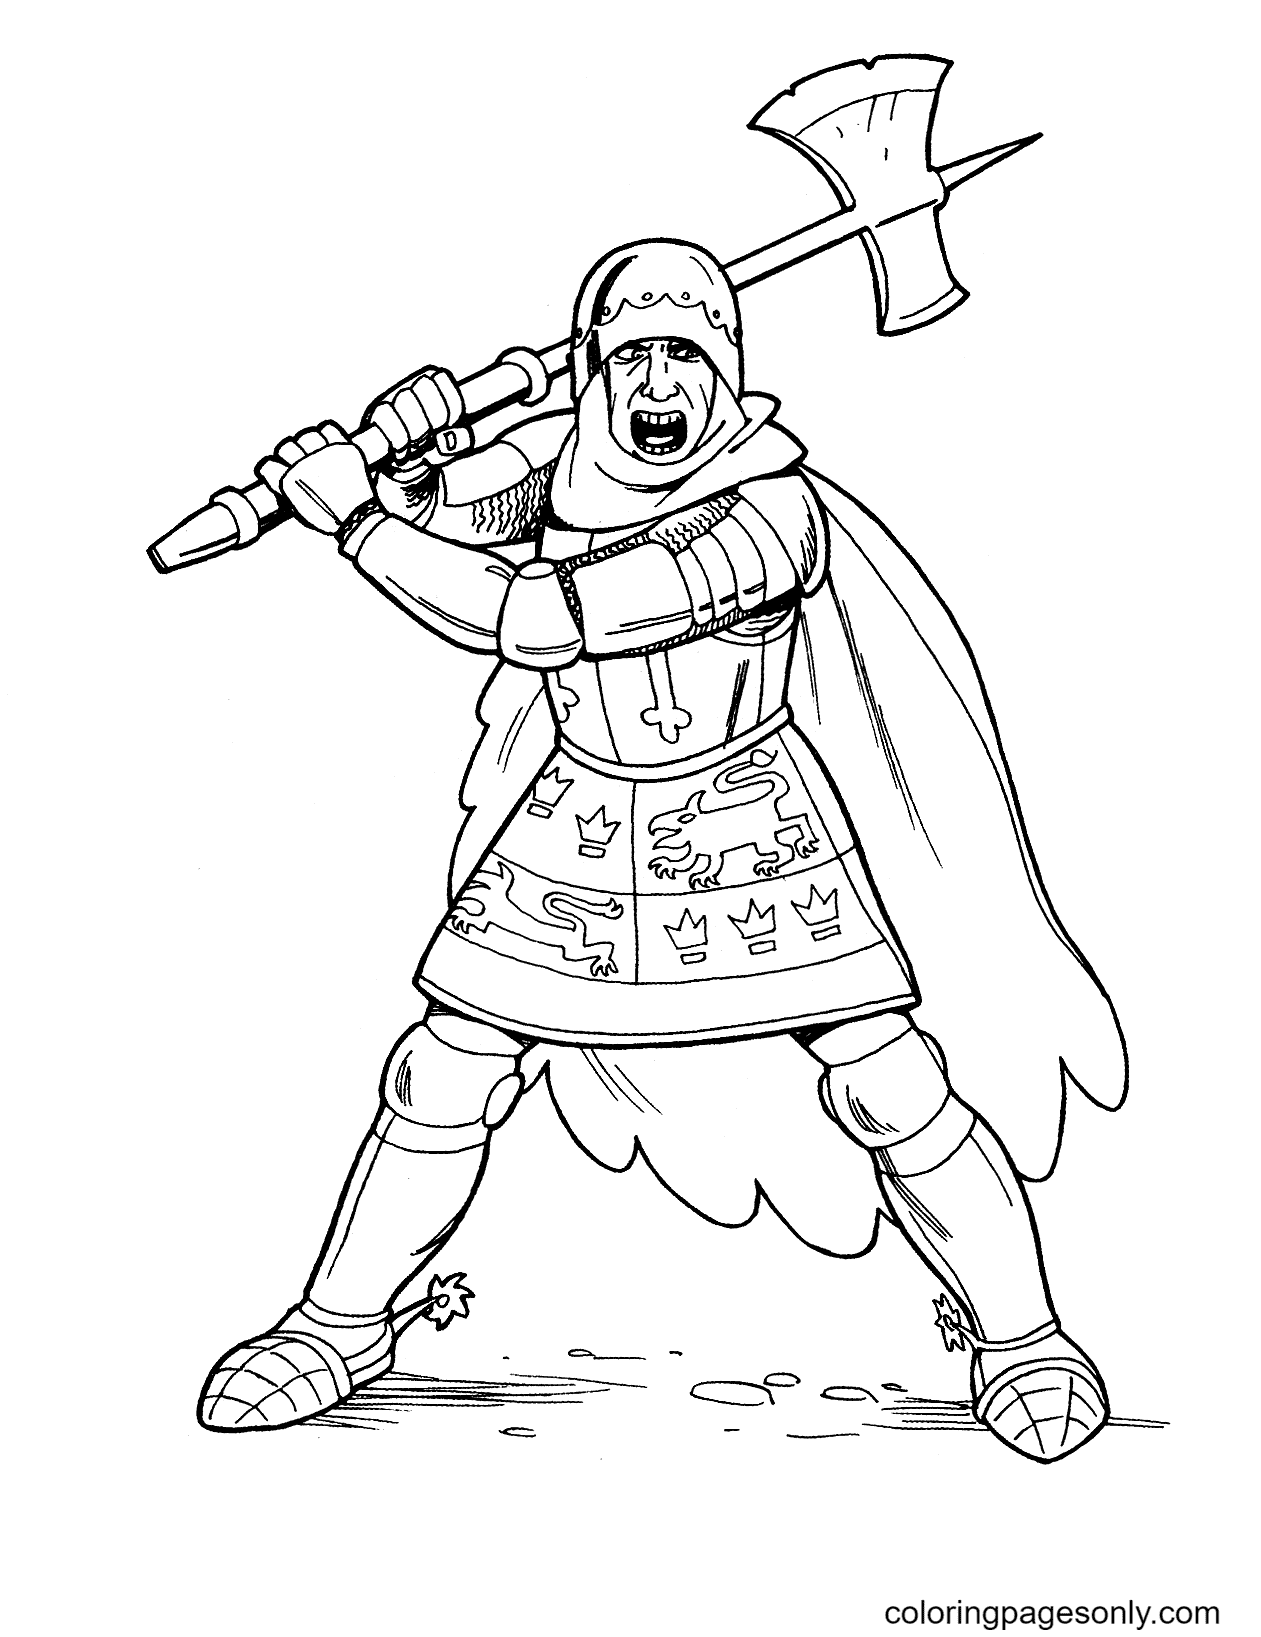 Knight Ready to Fight with Ax in Hand Coloring Page